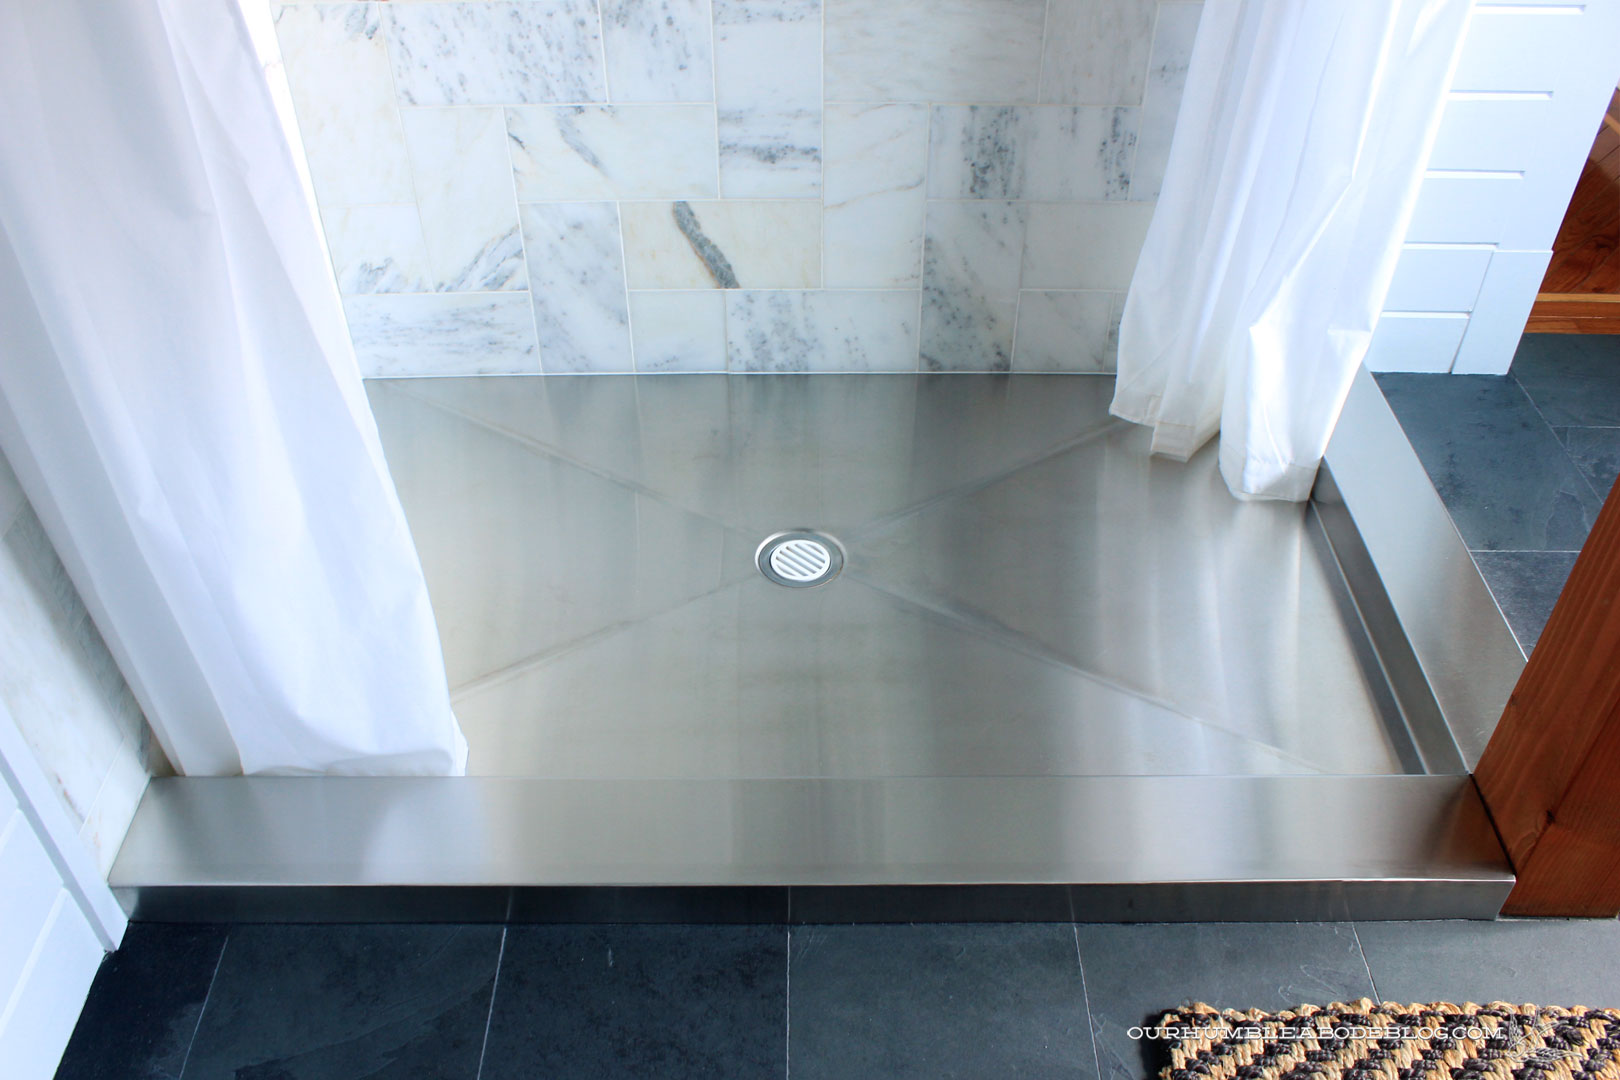 Stainless Steel Shower Pan After Bon Ami Cleaning